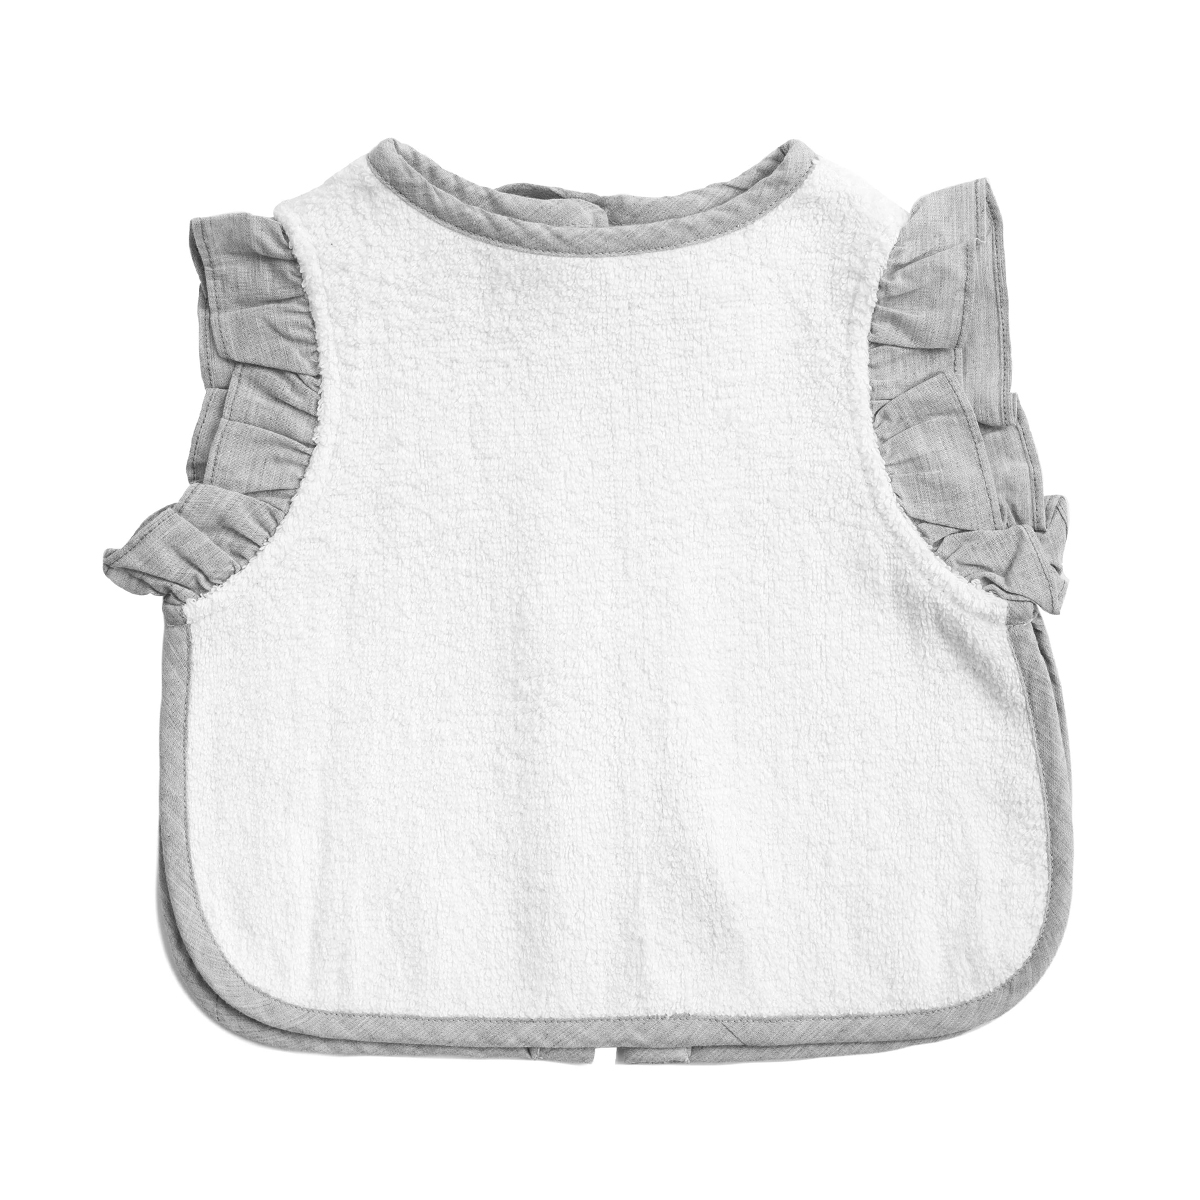 Louelle Cotton Apron Bib in Husk Grey Ruffle & White